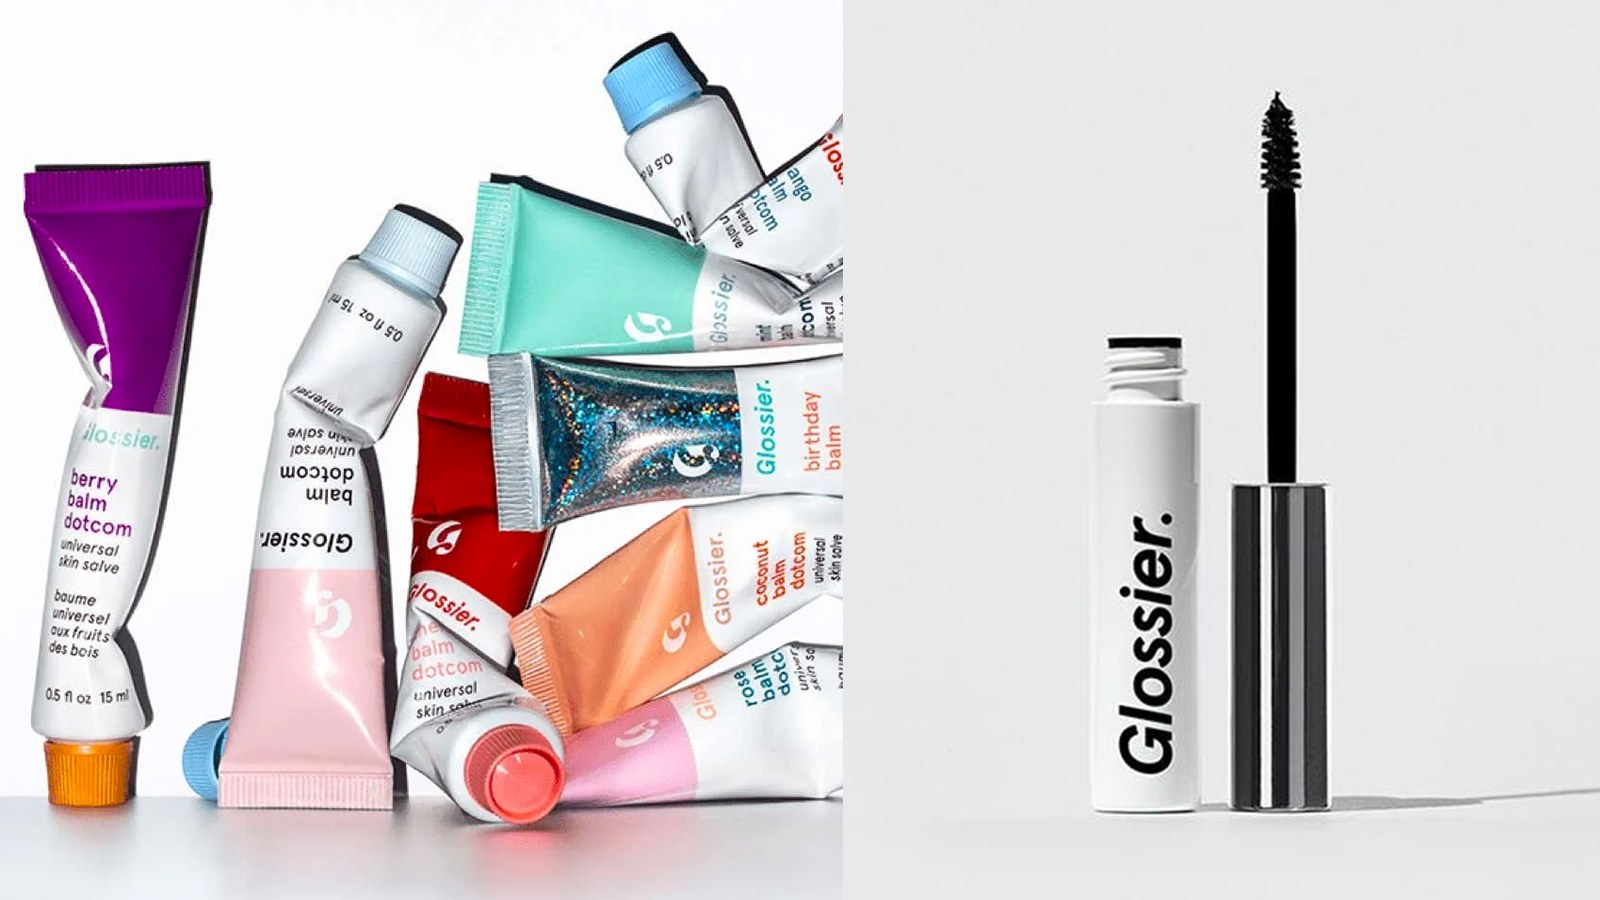 Glossier Black Friday Sale 2019: 20% Off Deals to Shop